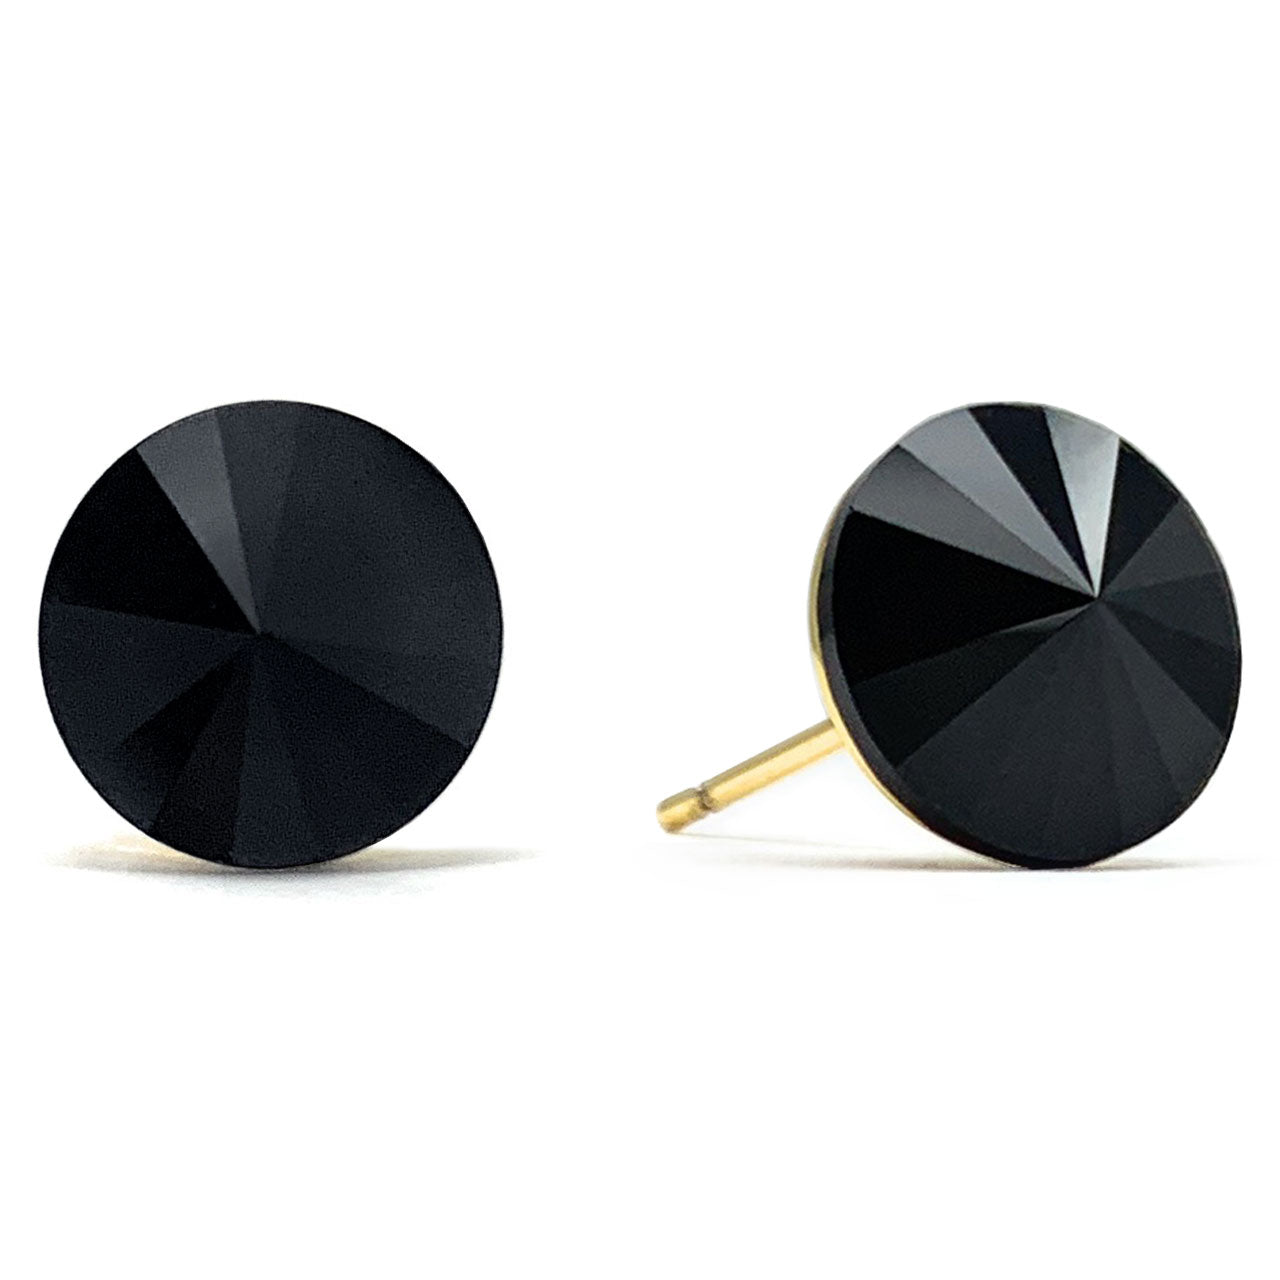 Harley Stud Earrings with Black Jet Round Rivoli Crystals from Swarovski Gold Plated - Ed Heart